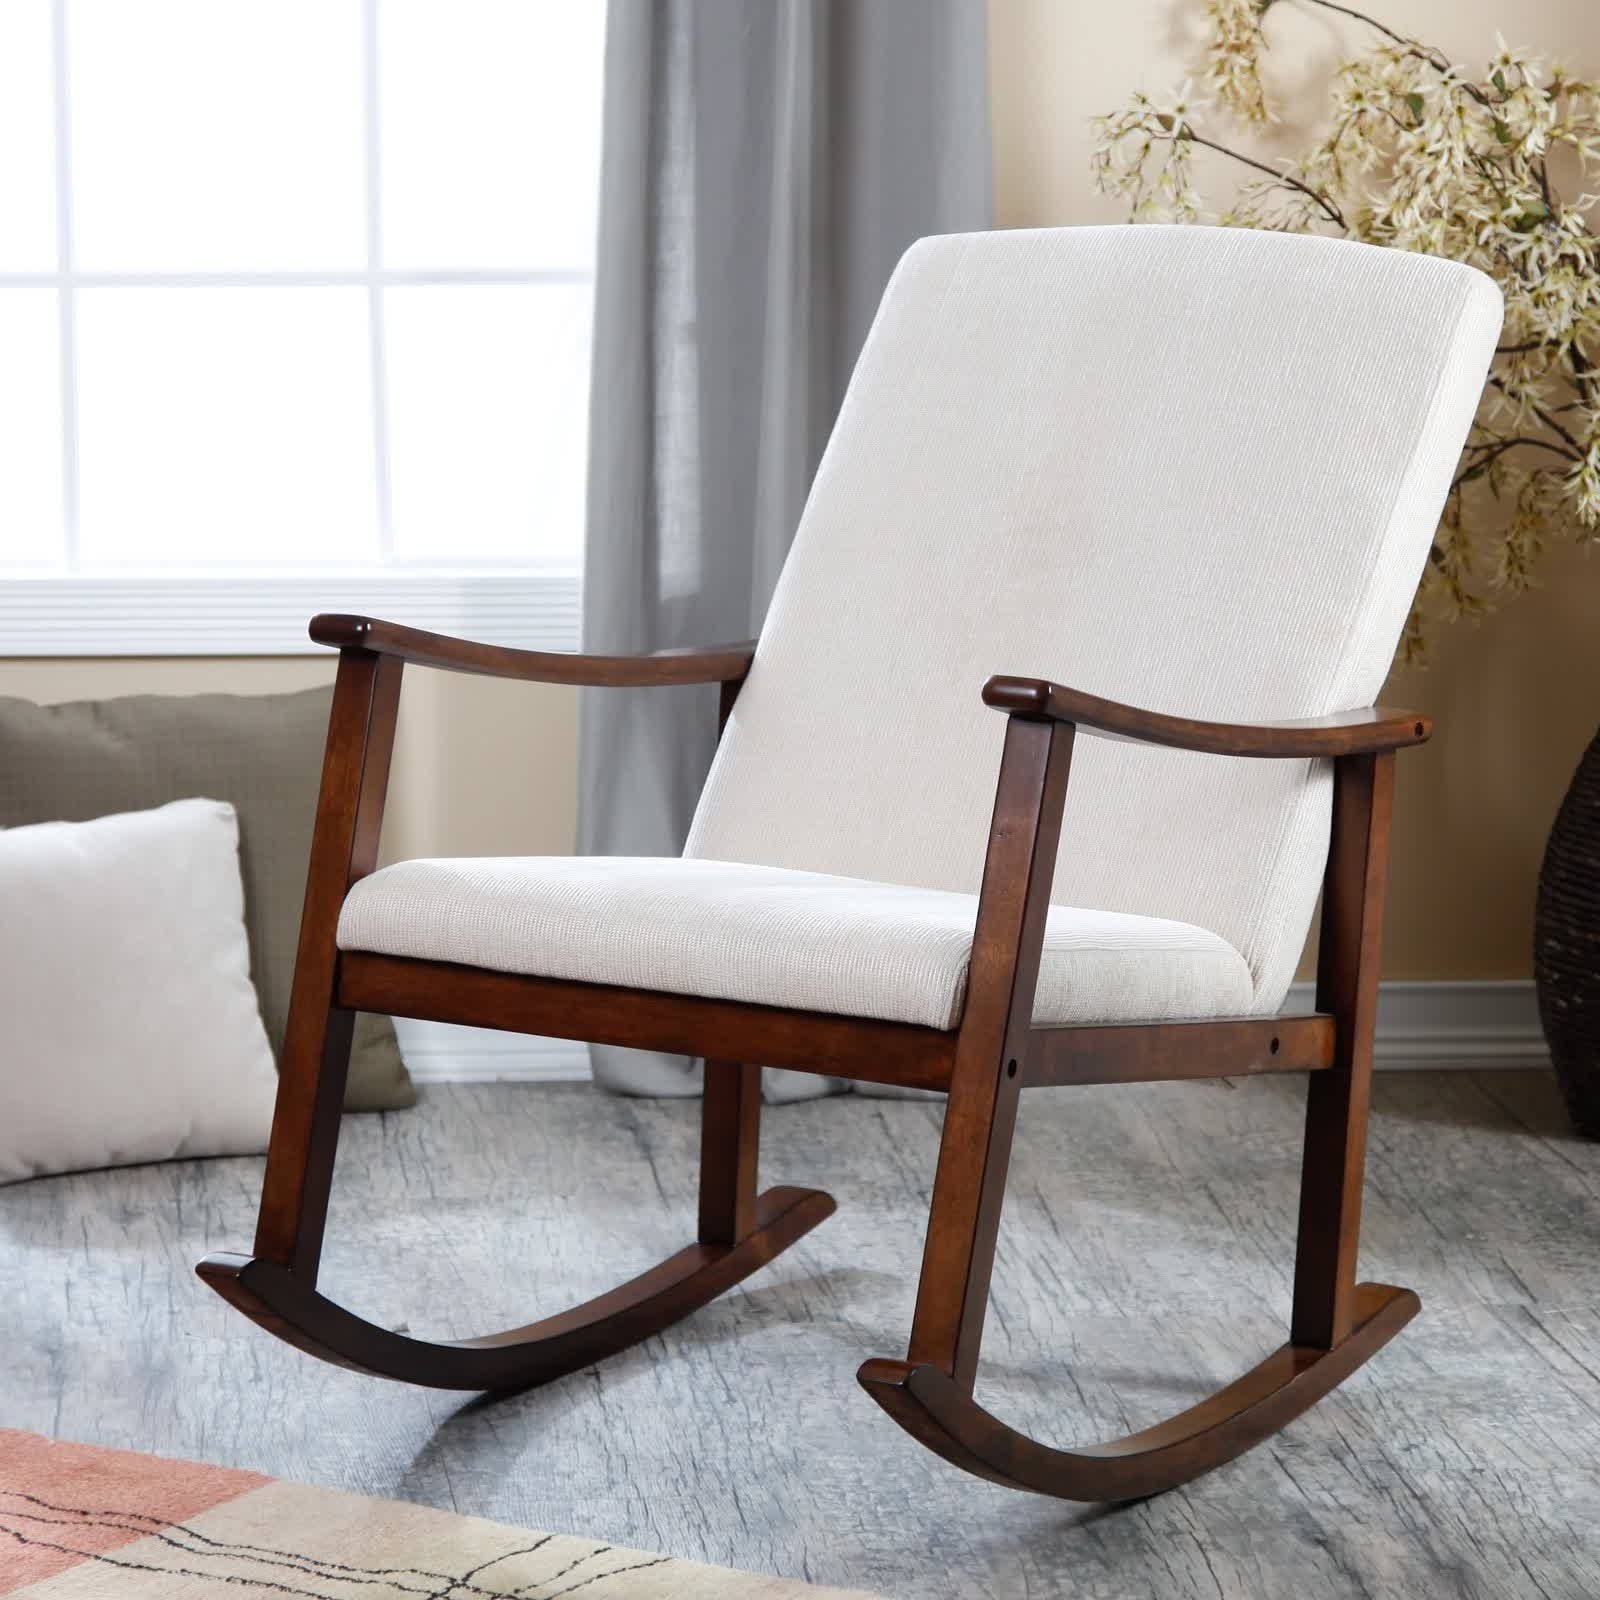 Rocking Chairs Adelaide Within Most Up To Date Modern Rocking Chair For Nursery : Milton Milano Designs – Rocking (View 8 of 15)